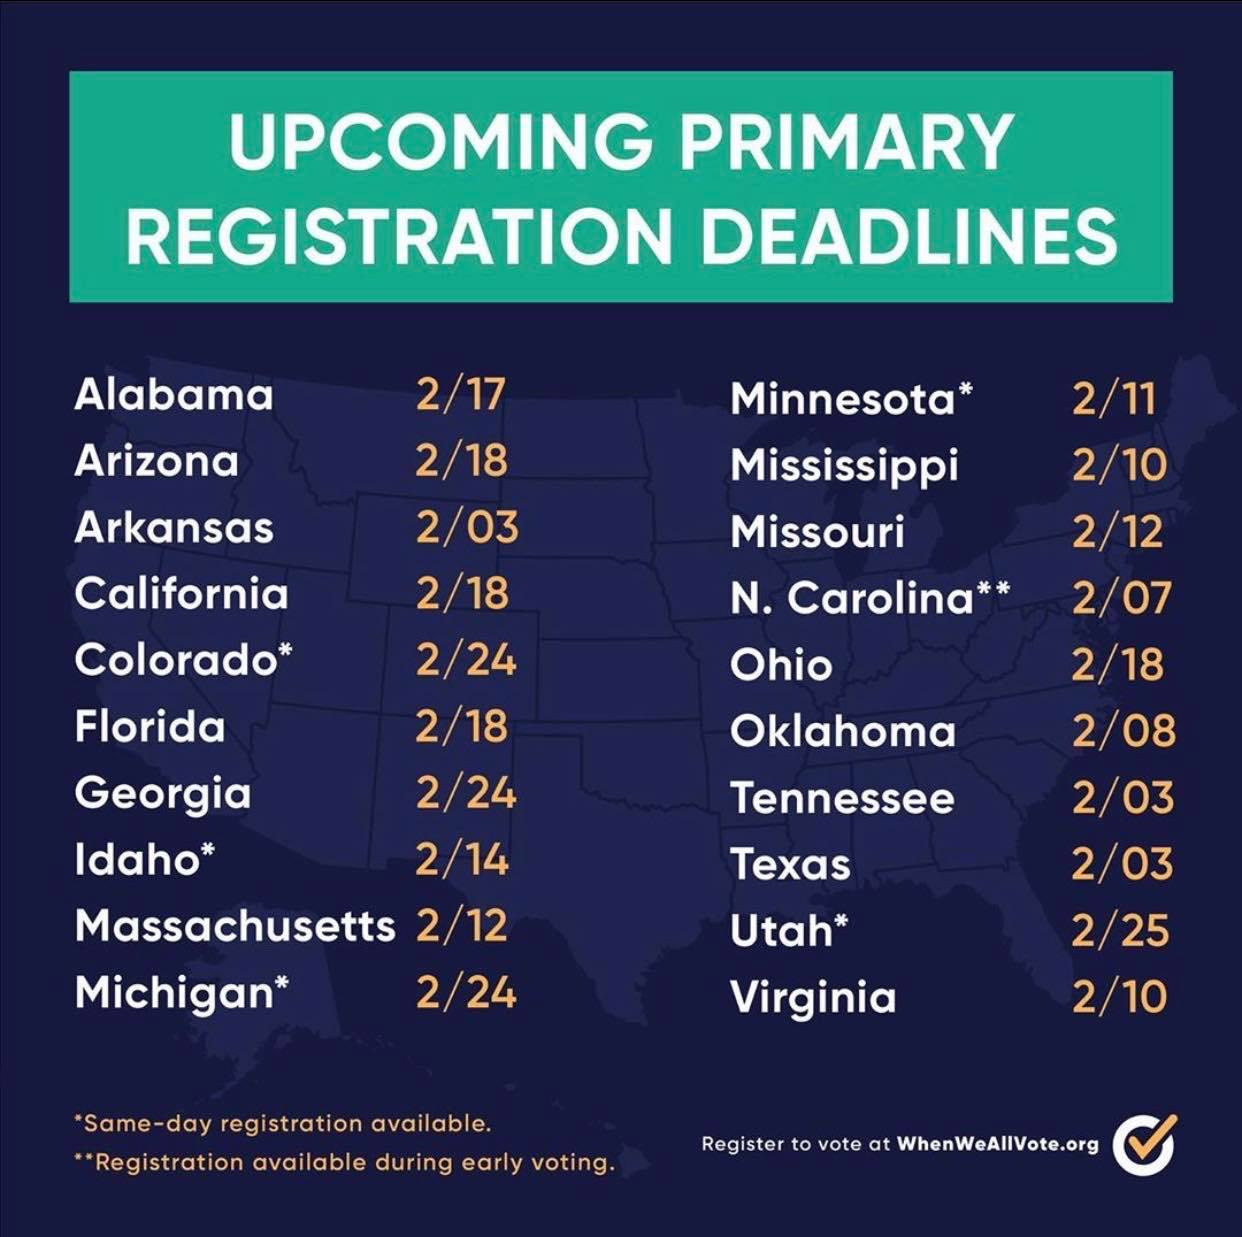 Primary Registration Deadlines 2020